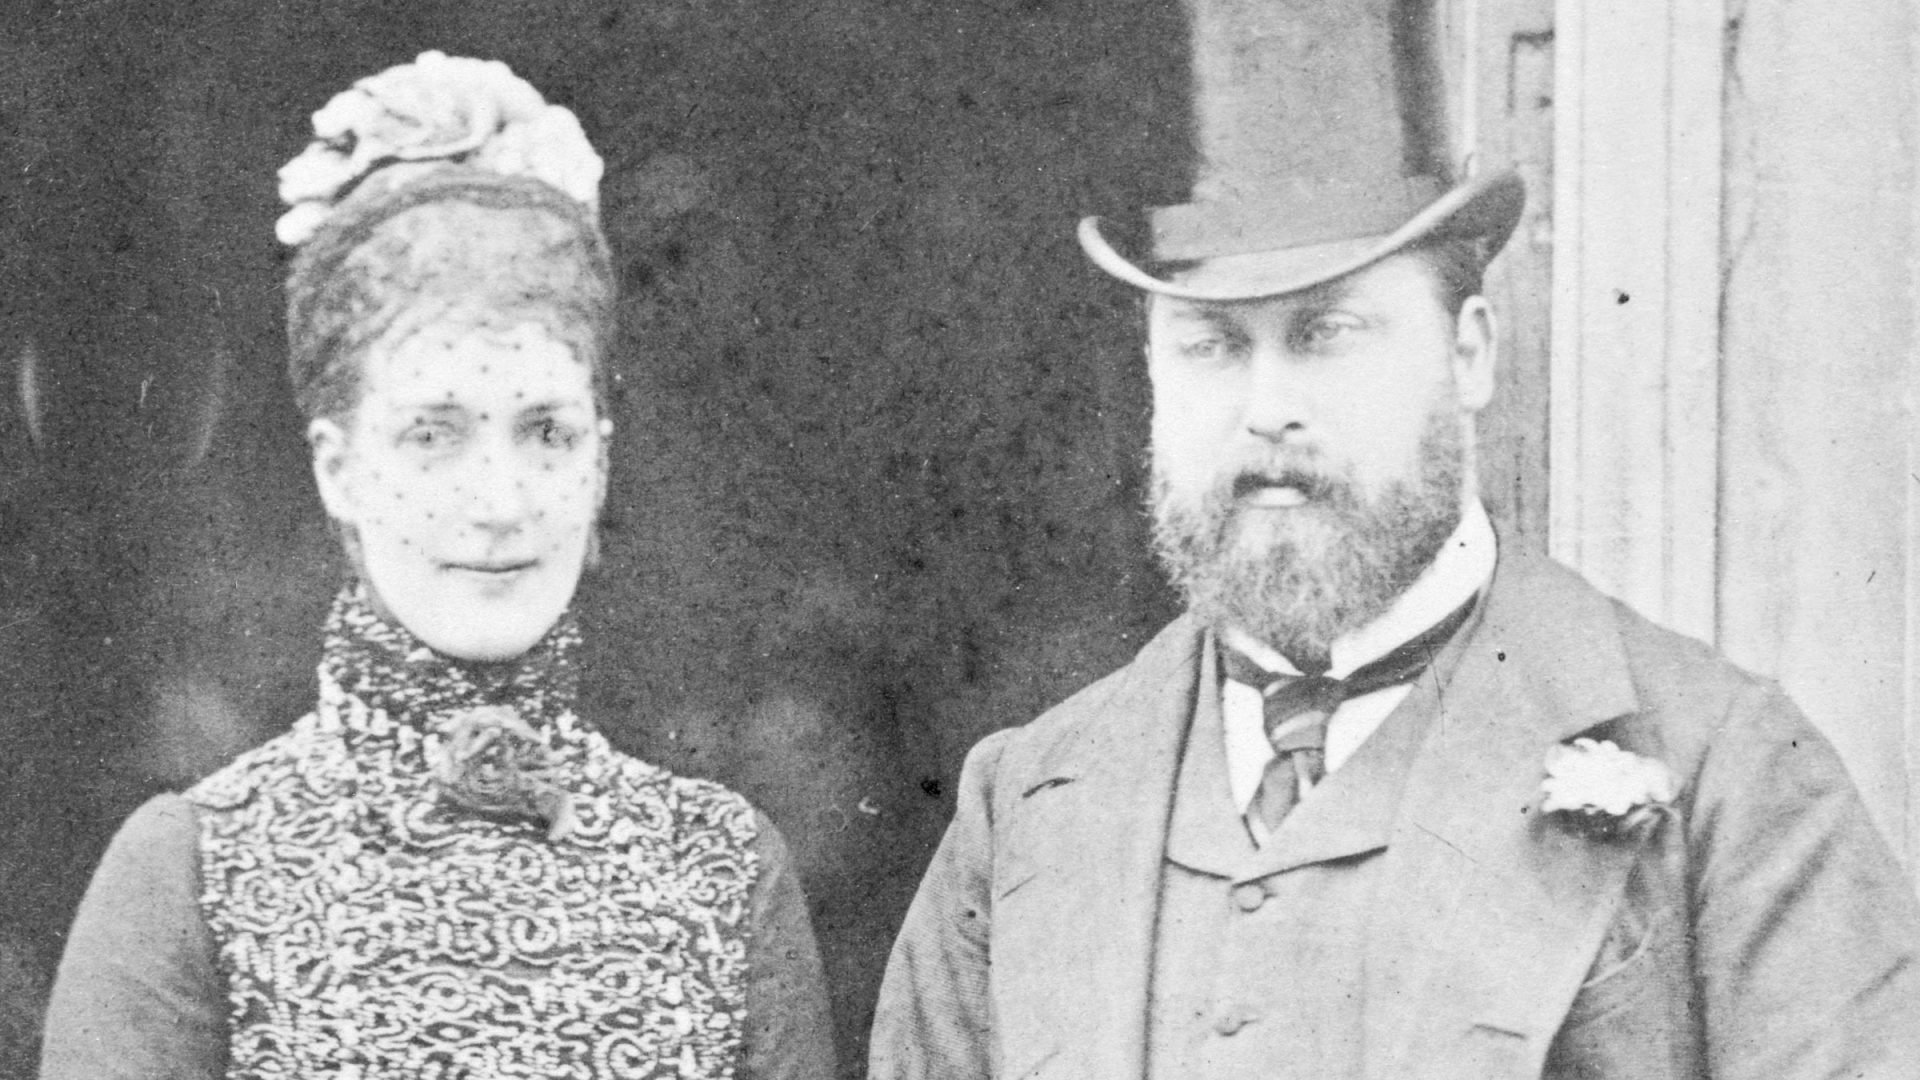 The Prince (later King Edward VII) and Princess of Wales in 1882